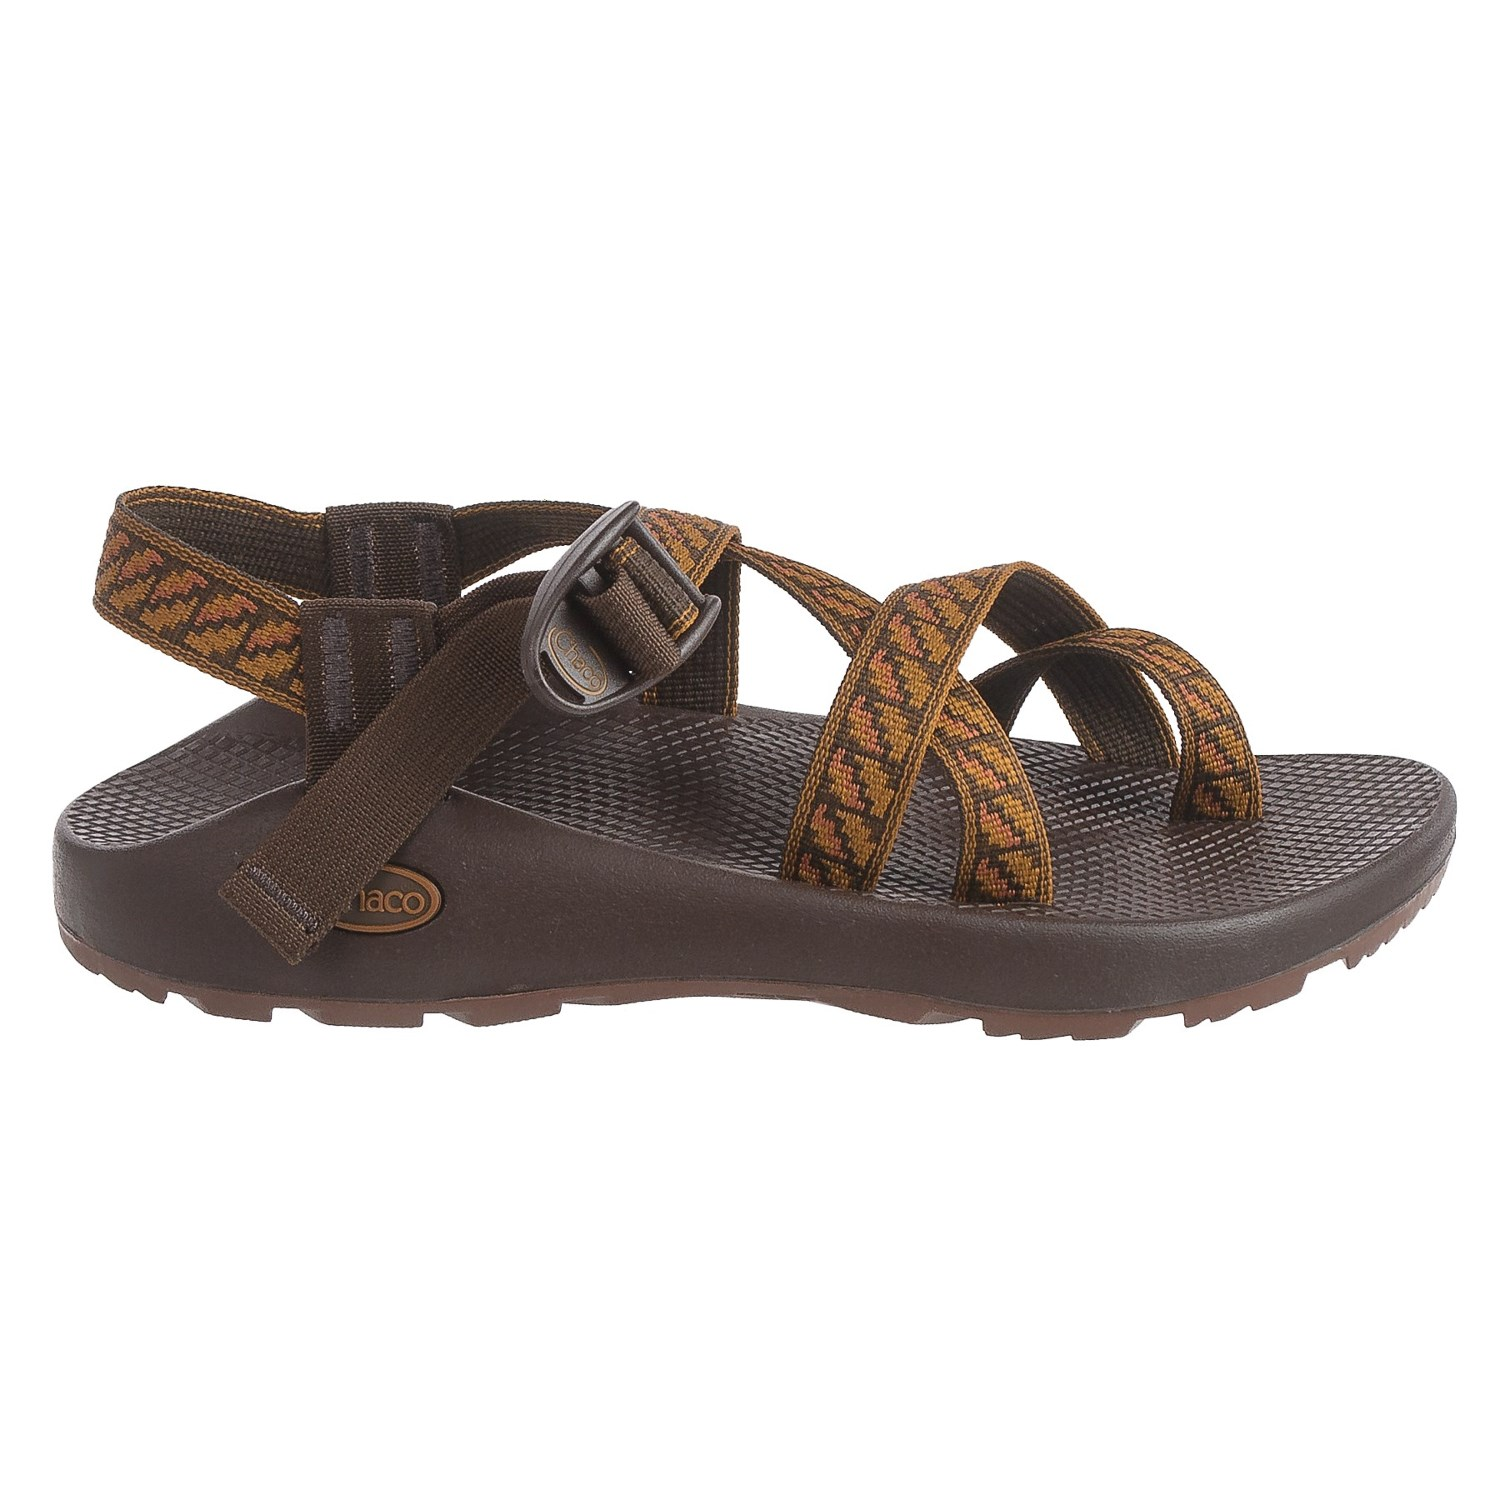 c91baf015ad1 Chaco Z 2® Classic Sport Sandals (For Men) - Save 42%